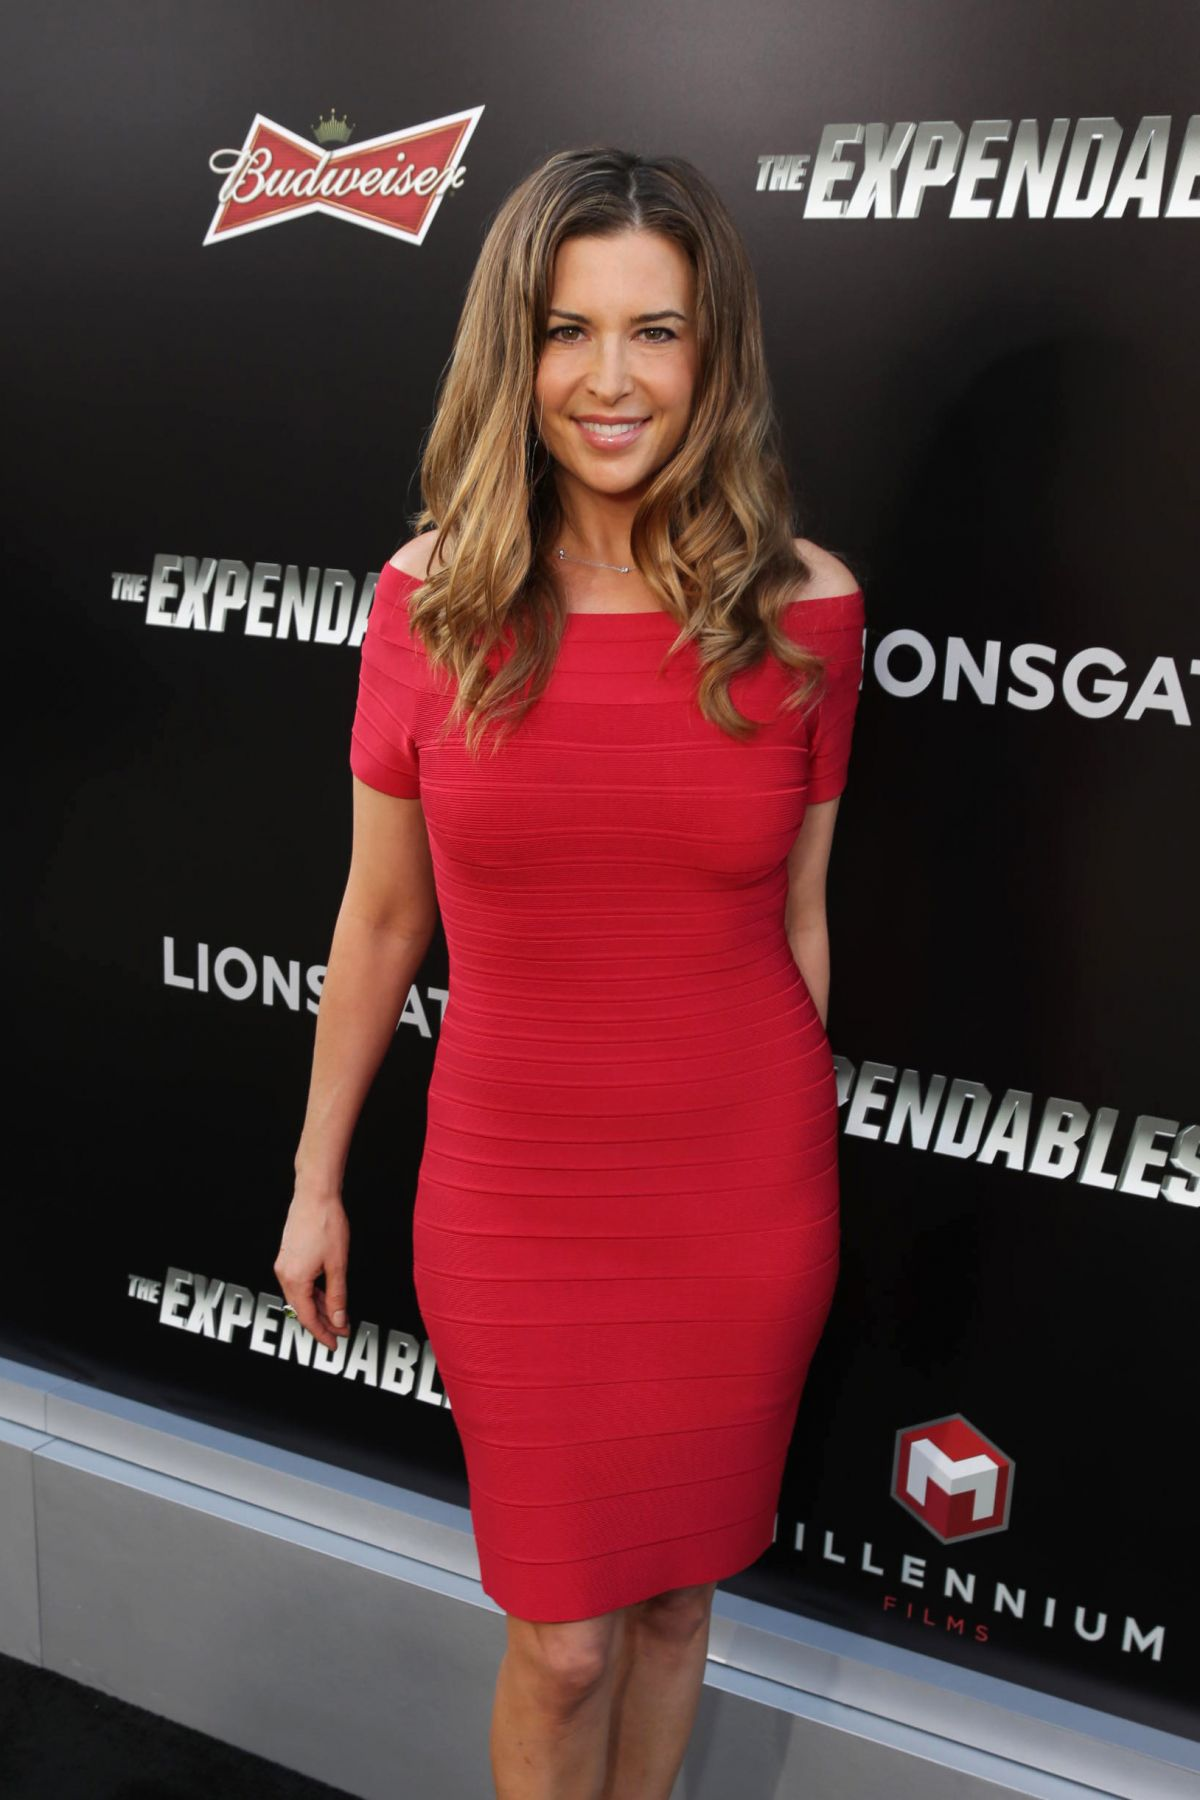 ASHLEY CUSATO at The Expendables 3 Premiere in Los Angeles